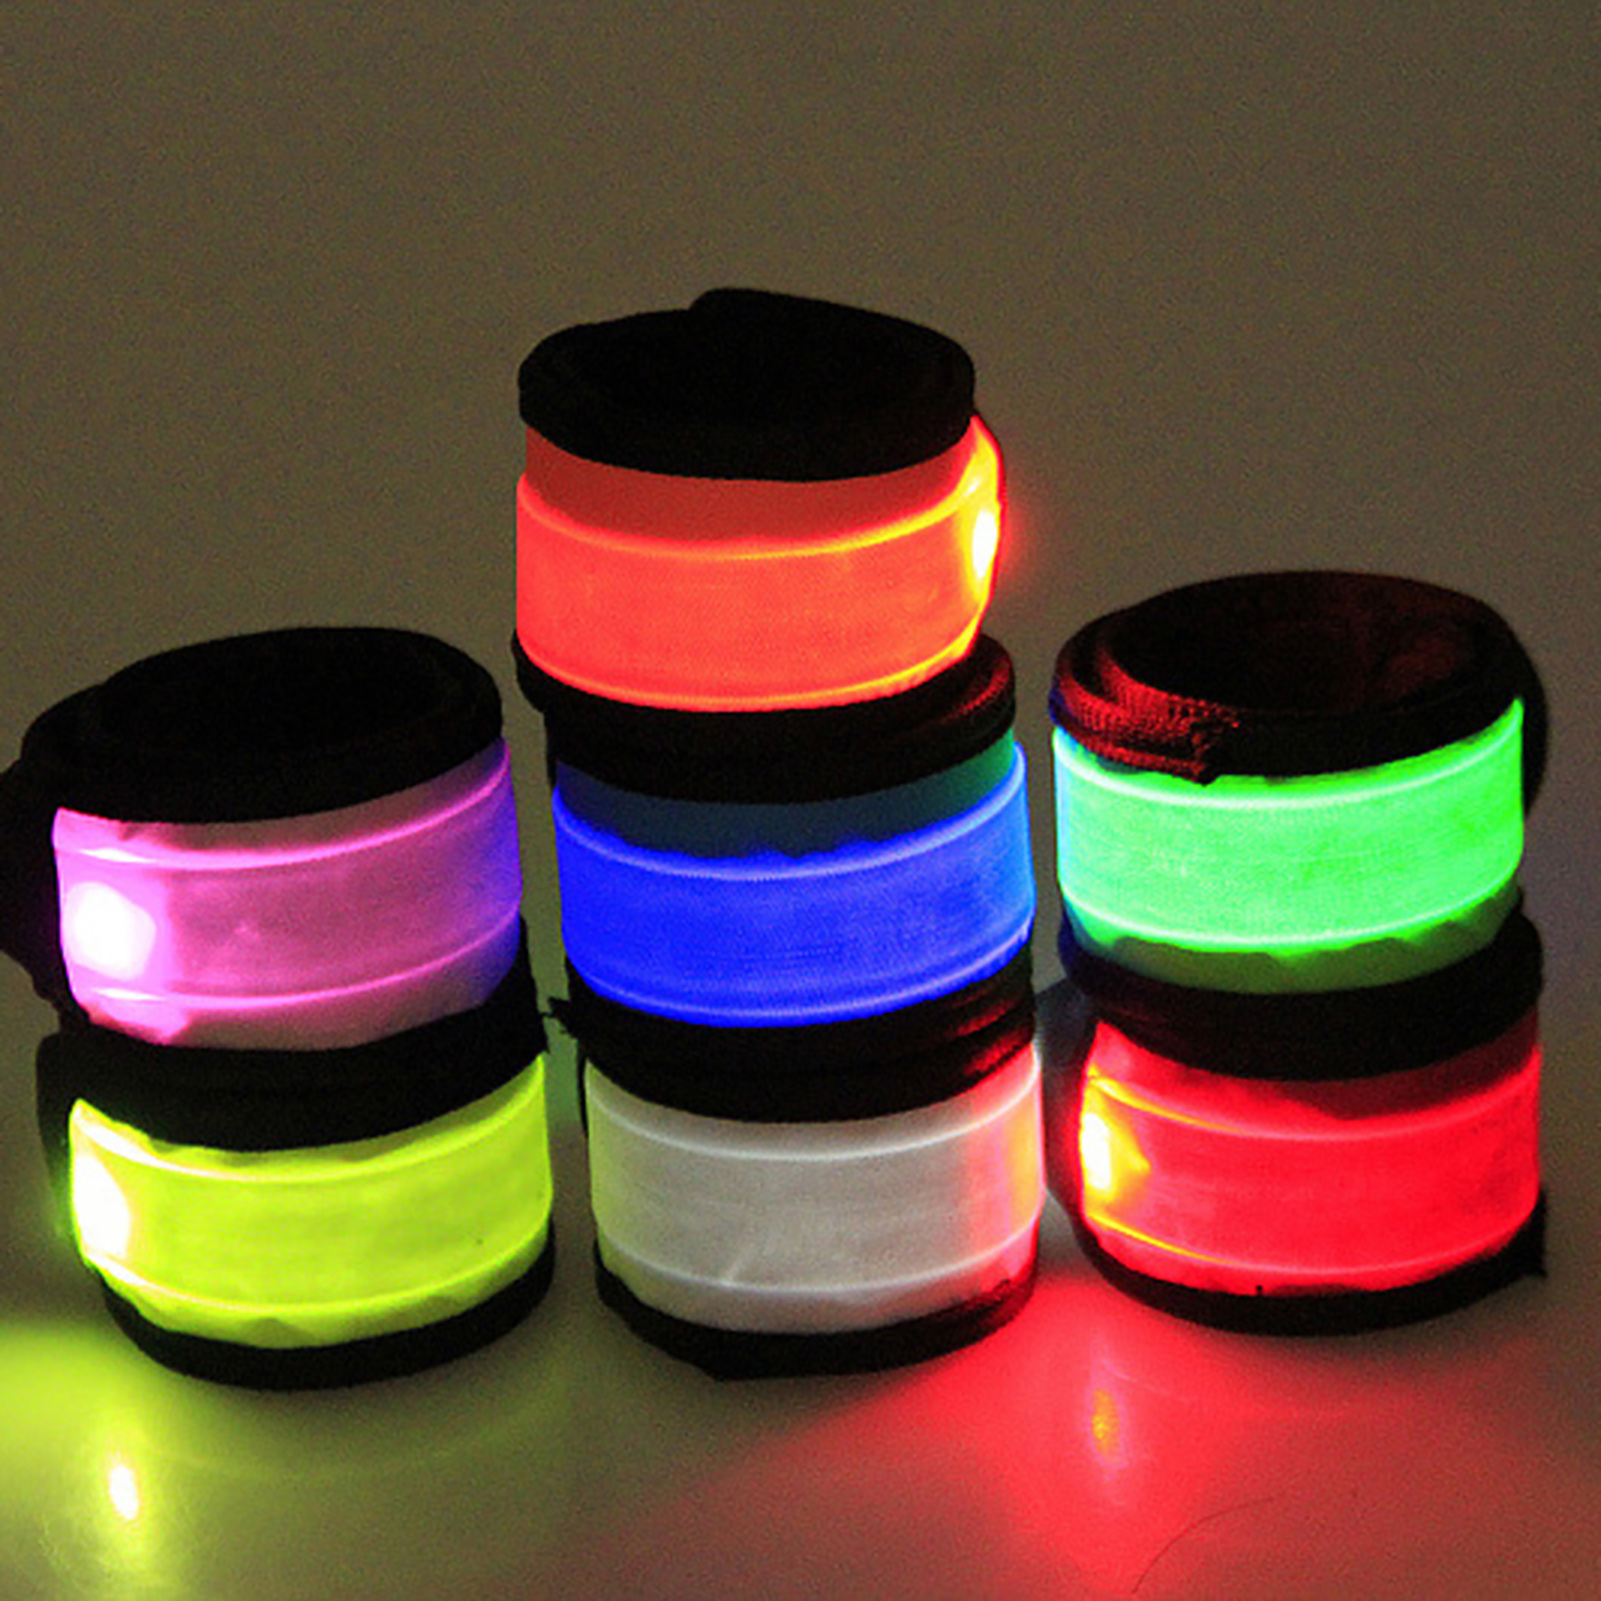 LED-Flashing-Light-Up-Glow-Bracelet-Wristband-Vocal-Concert-Party-Props-Gift-HOT thumbnail 3